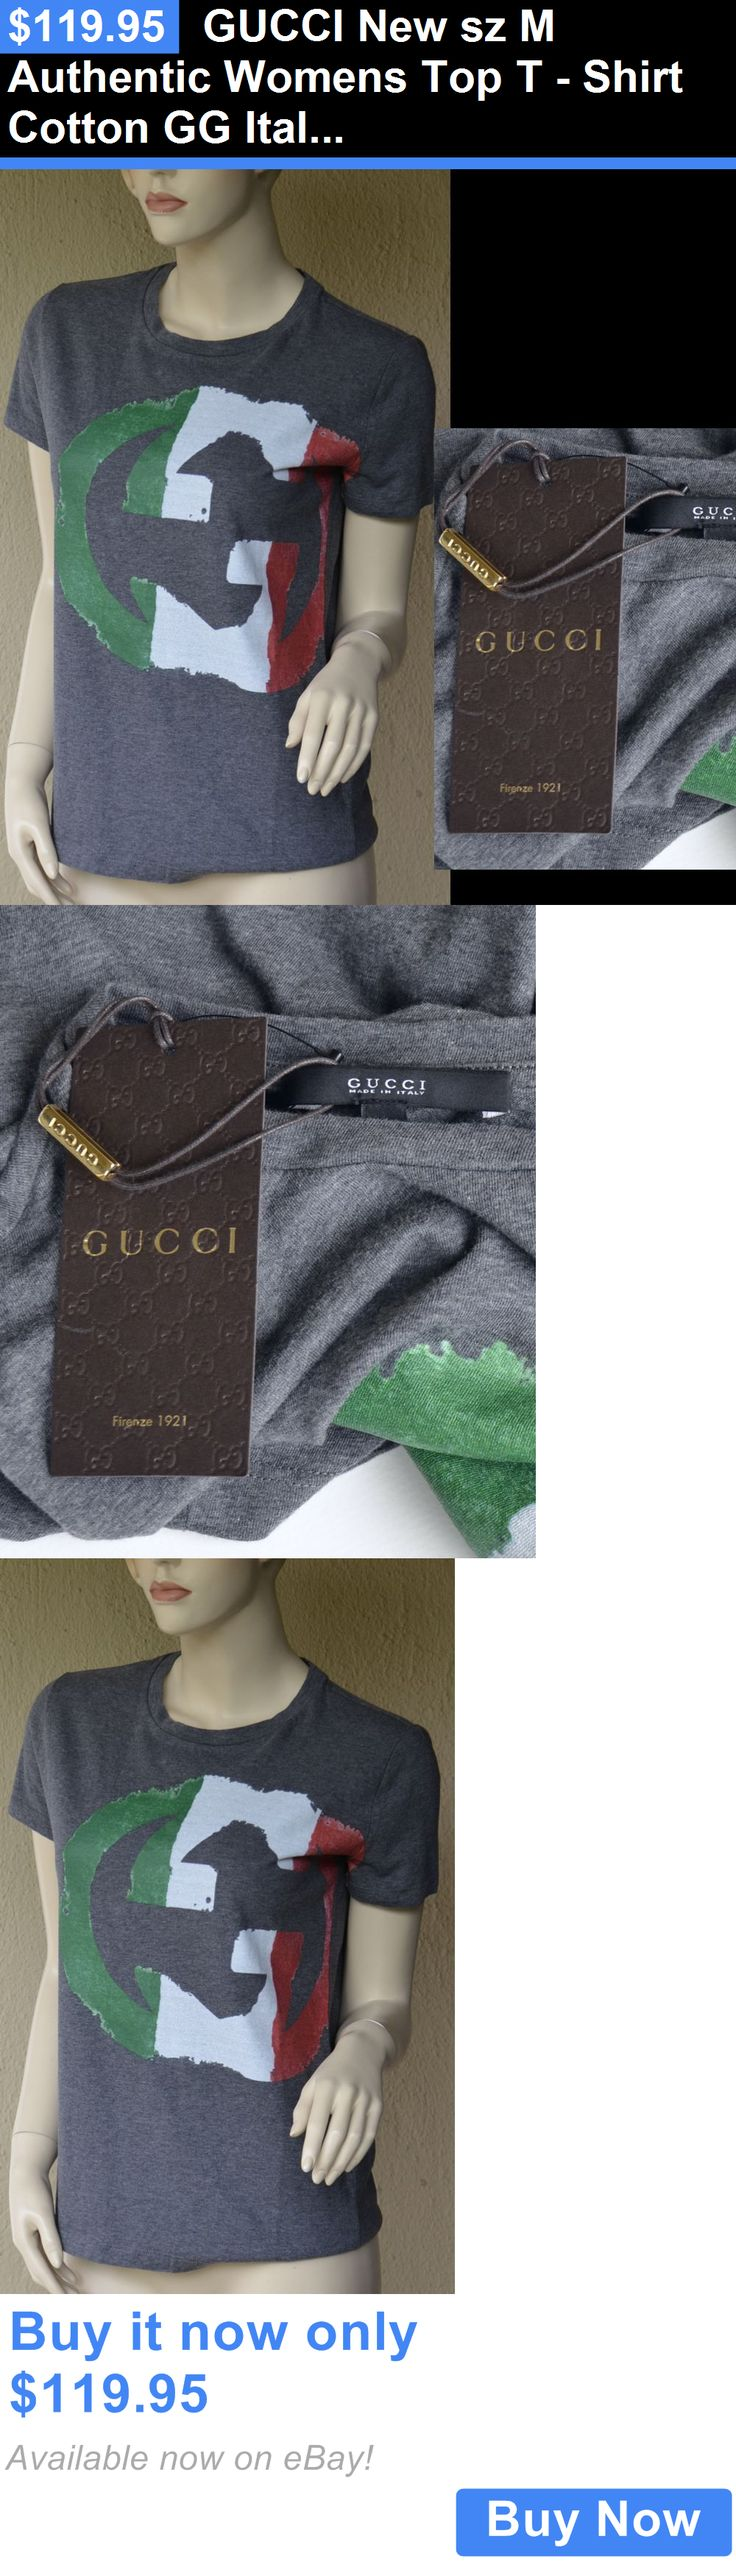 Women T Shirts: Gucci New Sz M Authentic Womens Top T - Shirt Cotton Gg Italian Flag Colors BUY IT NOW ONLY: $119.95